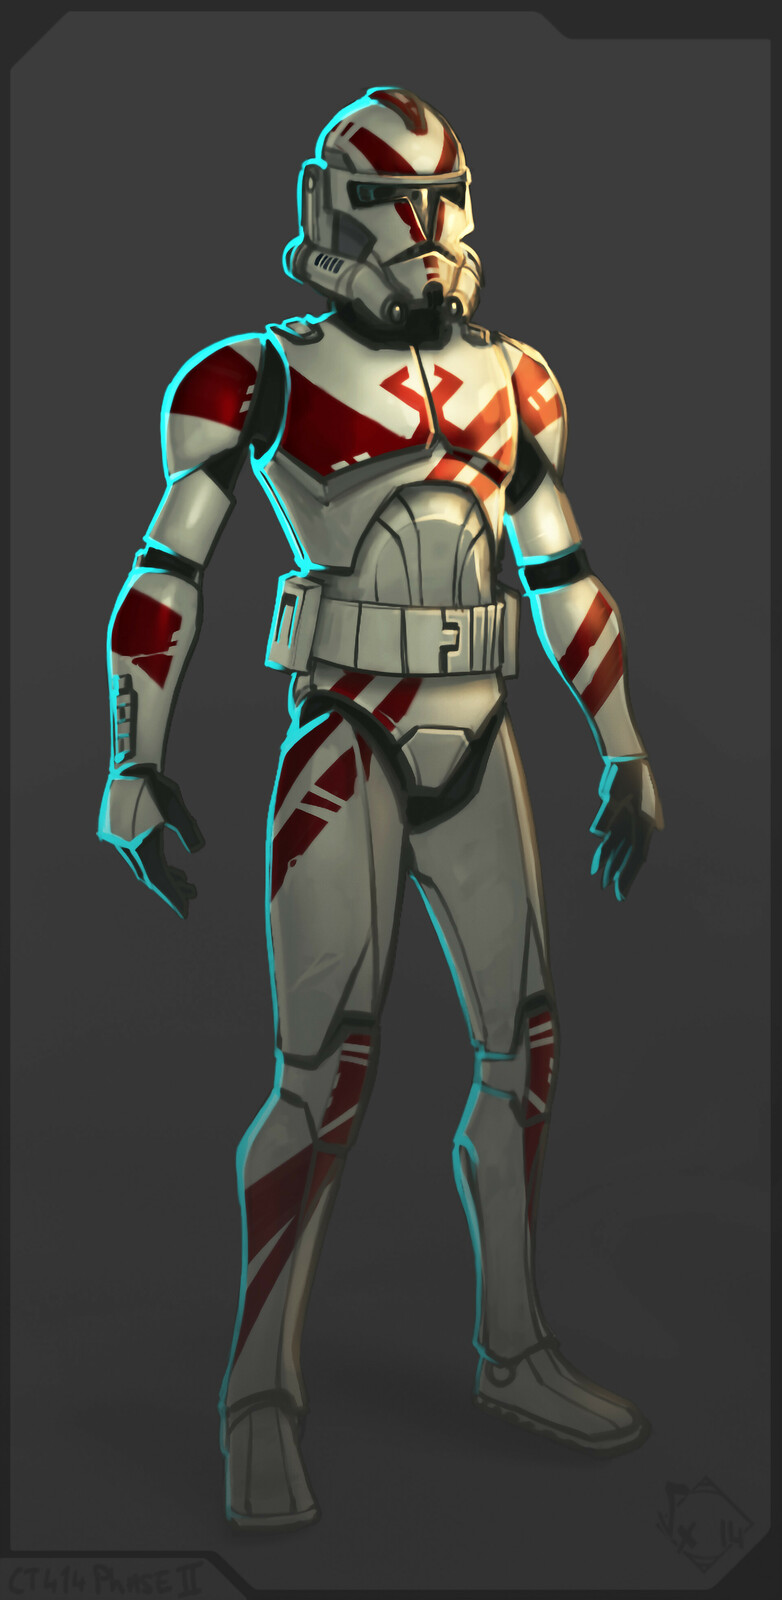 414th Trooper Phase 2